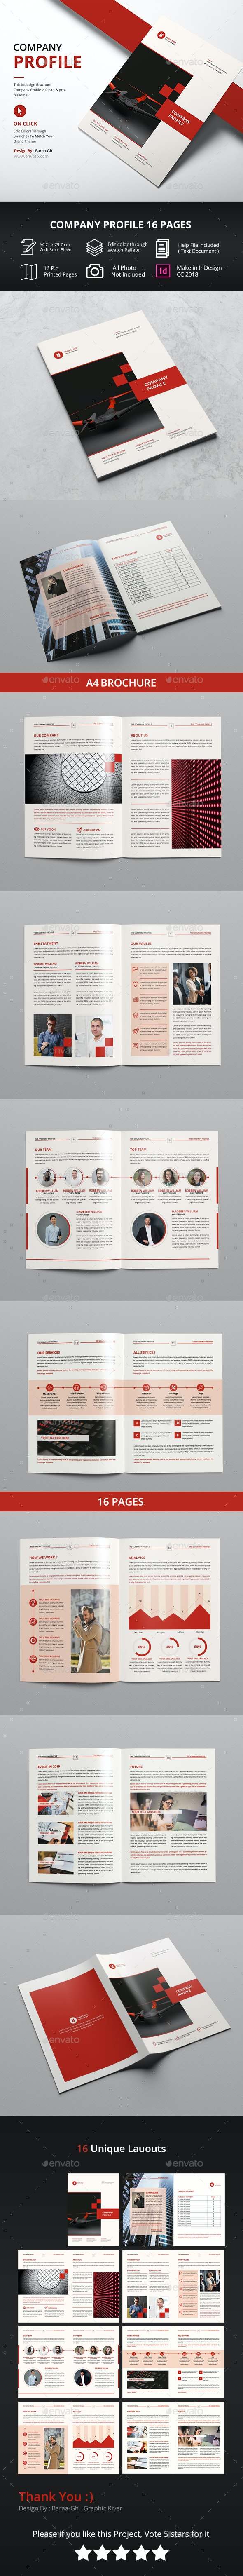 Red Company Profile - Corporate Brochures